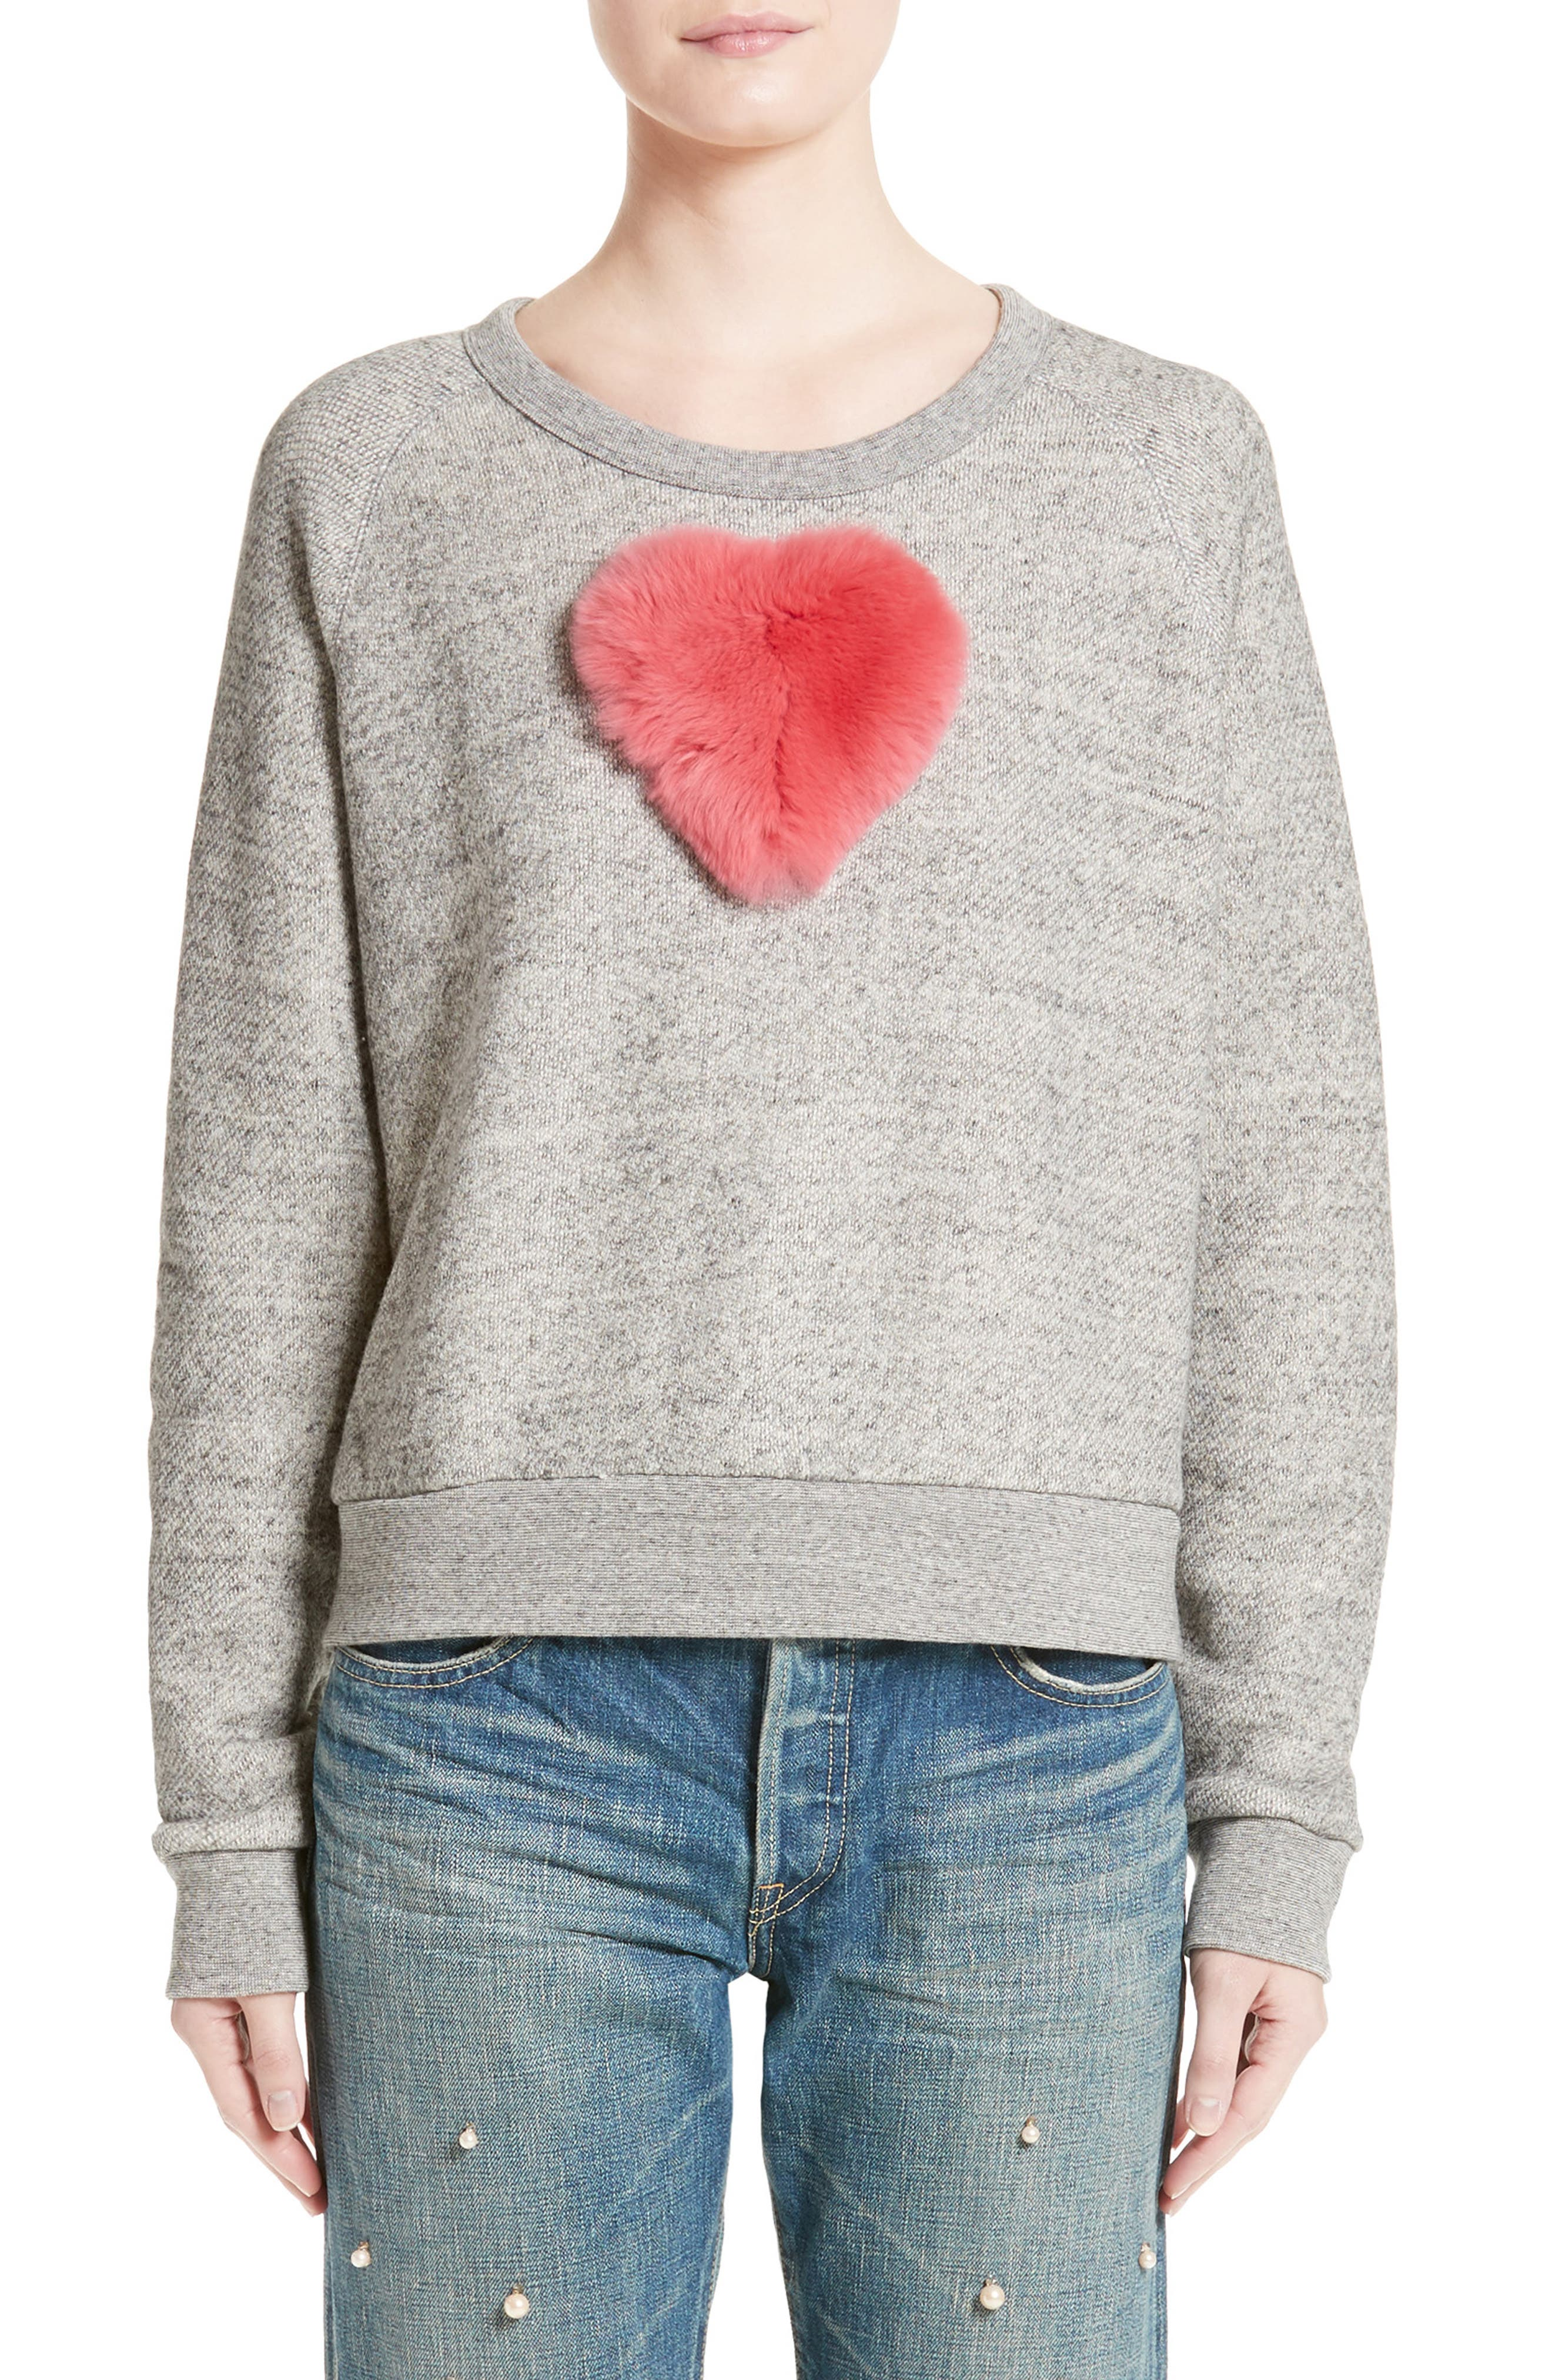 One Heart Pullover,                             Main thumbnail 1, color,                             Charcoal/Red